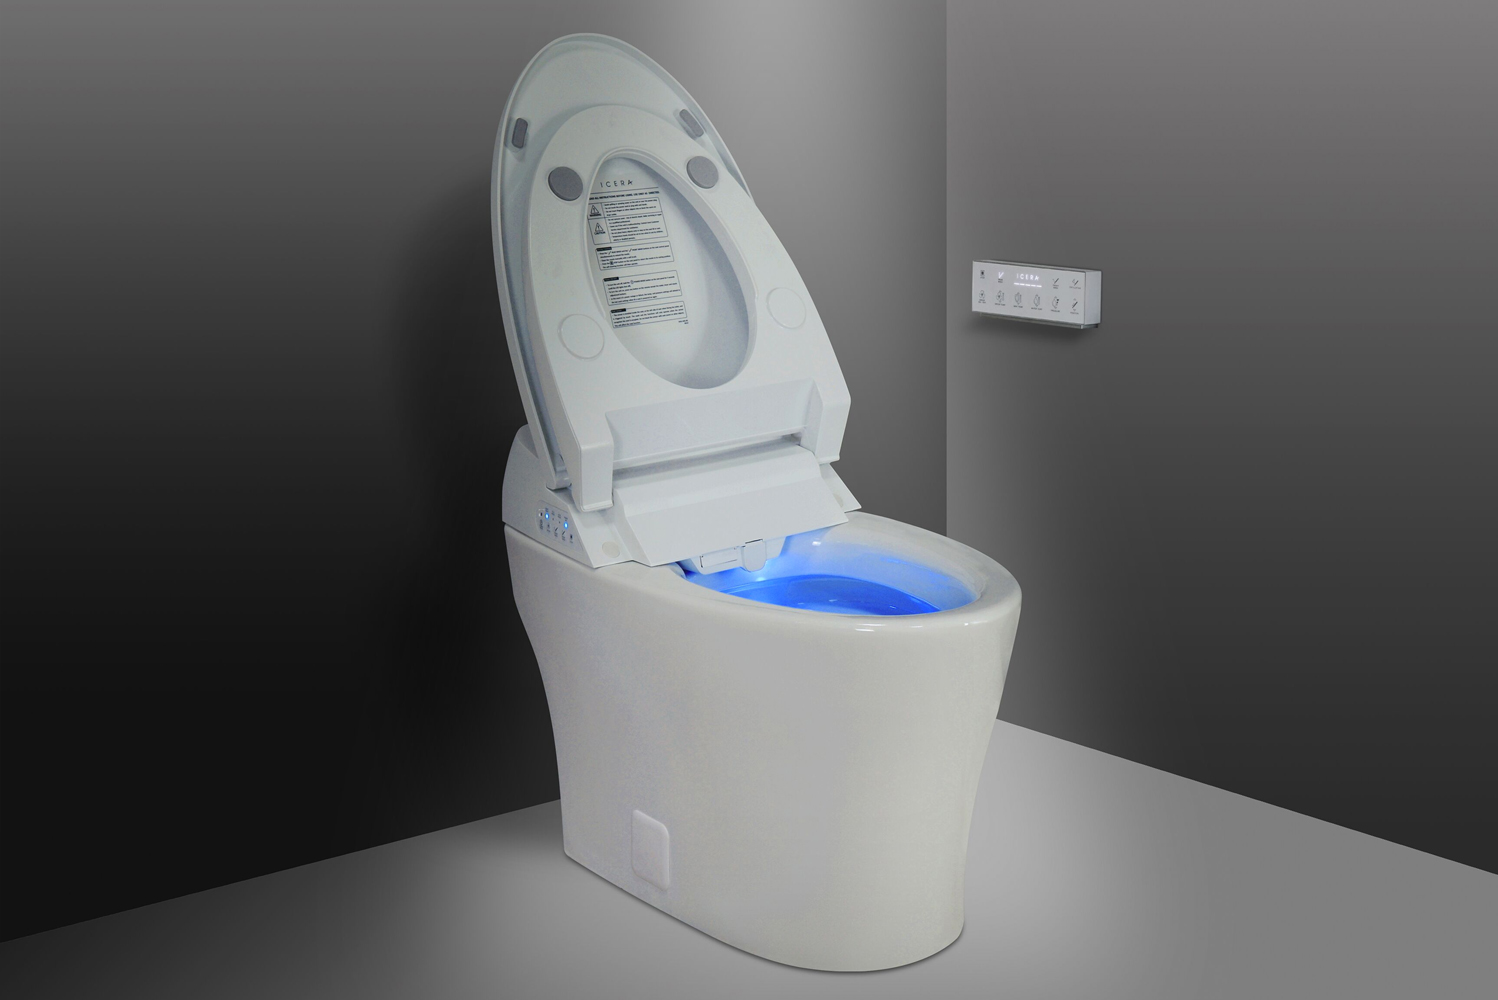 Enjoyable Integrated Bidet Toilet Muse Iwash From Icera Hotel Uwap Interior Chair Design Uwaporg